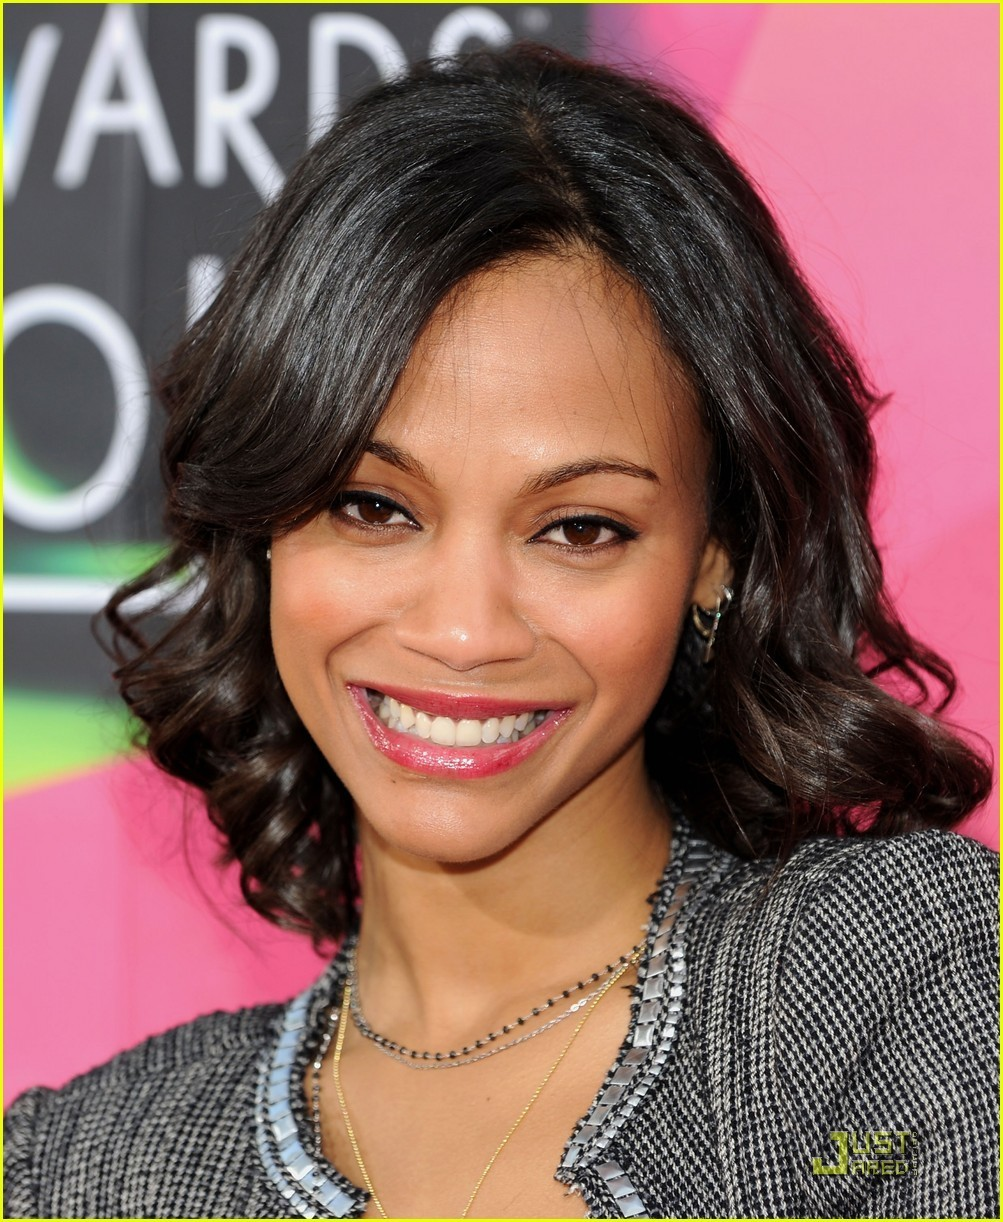 haircut names zoe 2010 choice awards zoe saldana photo 6076